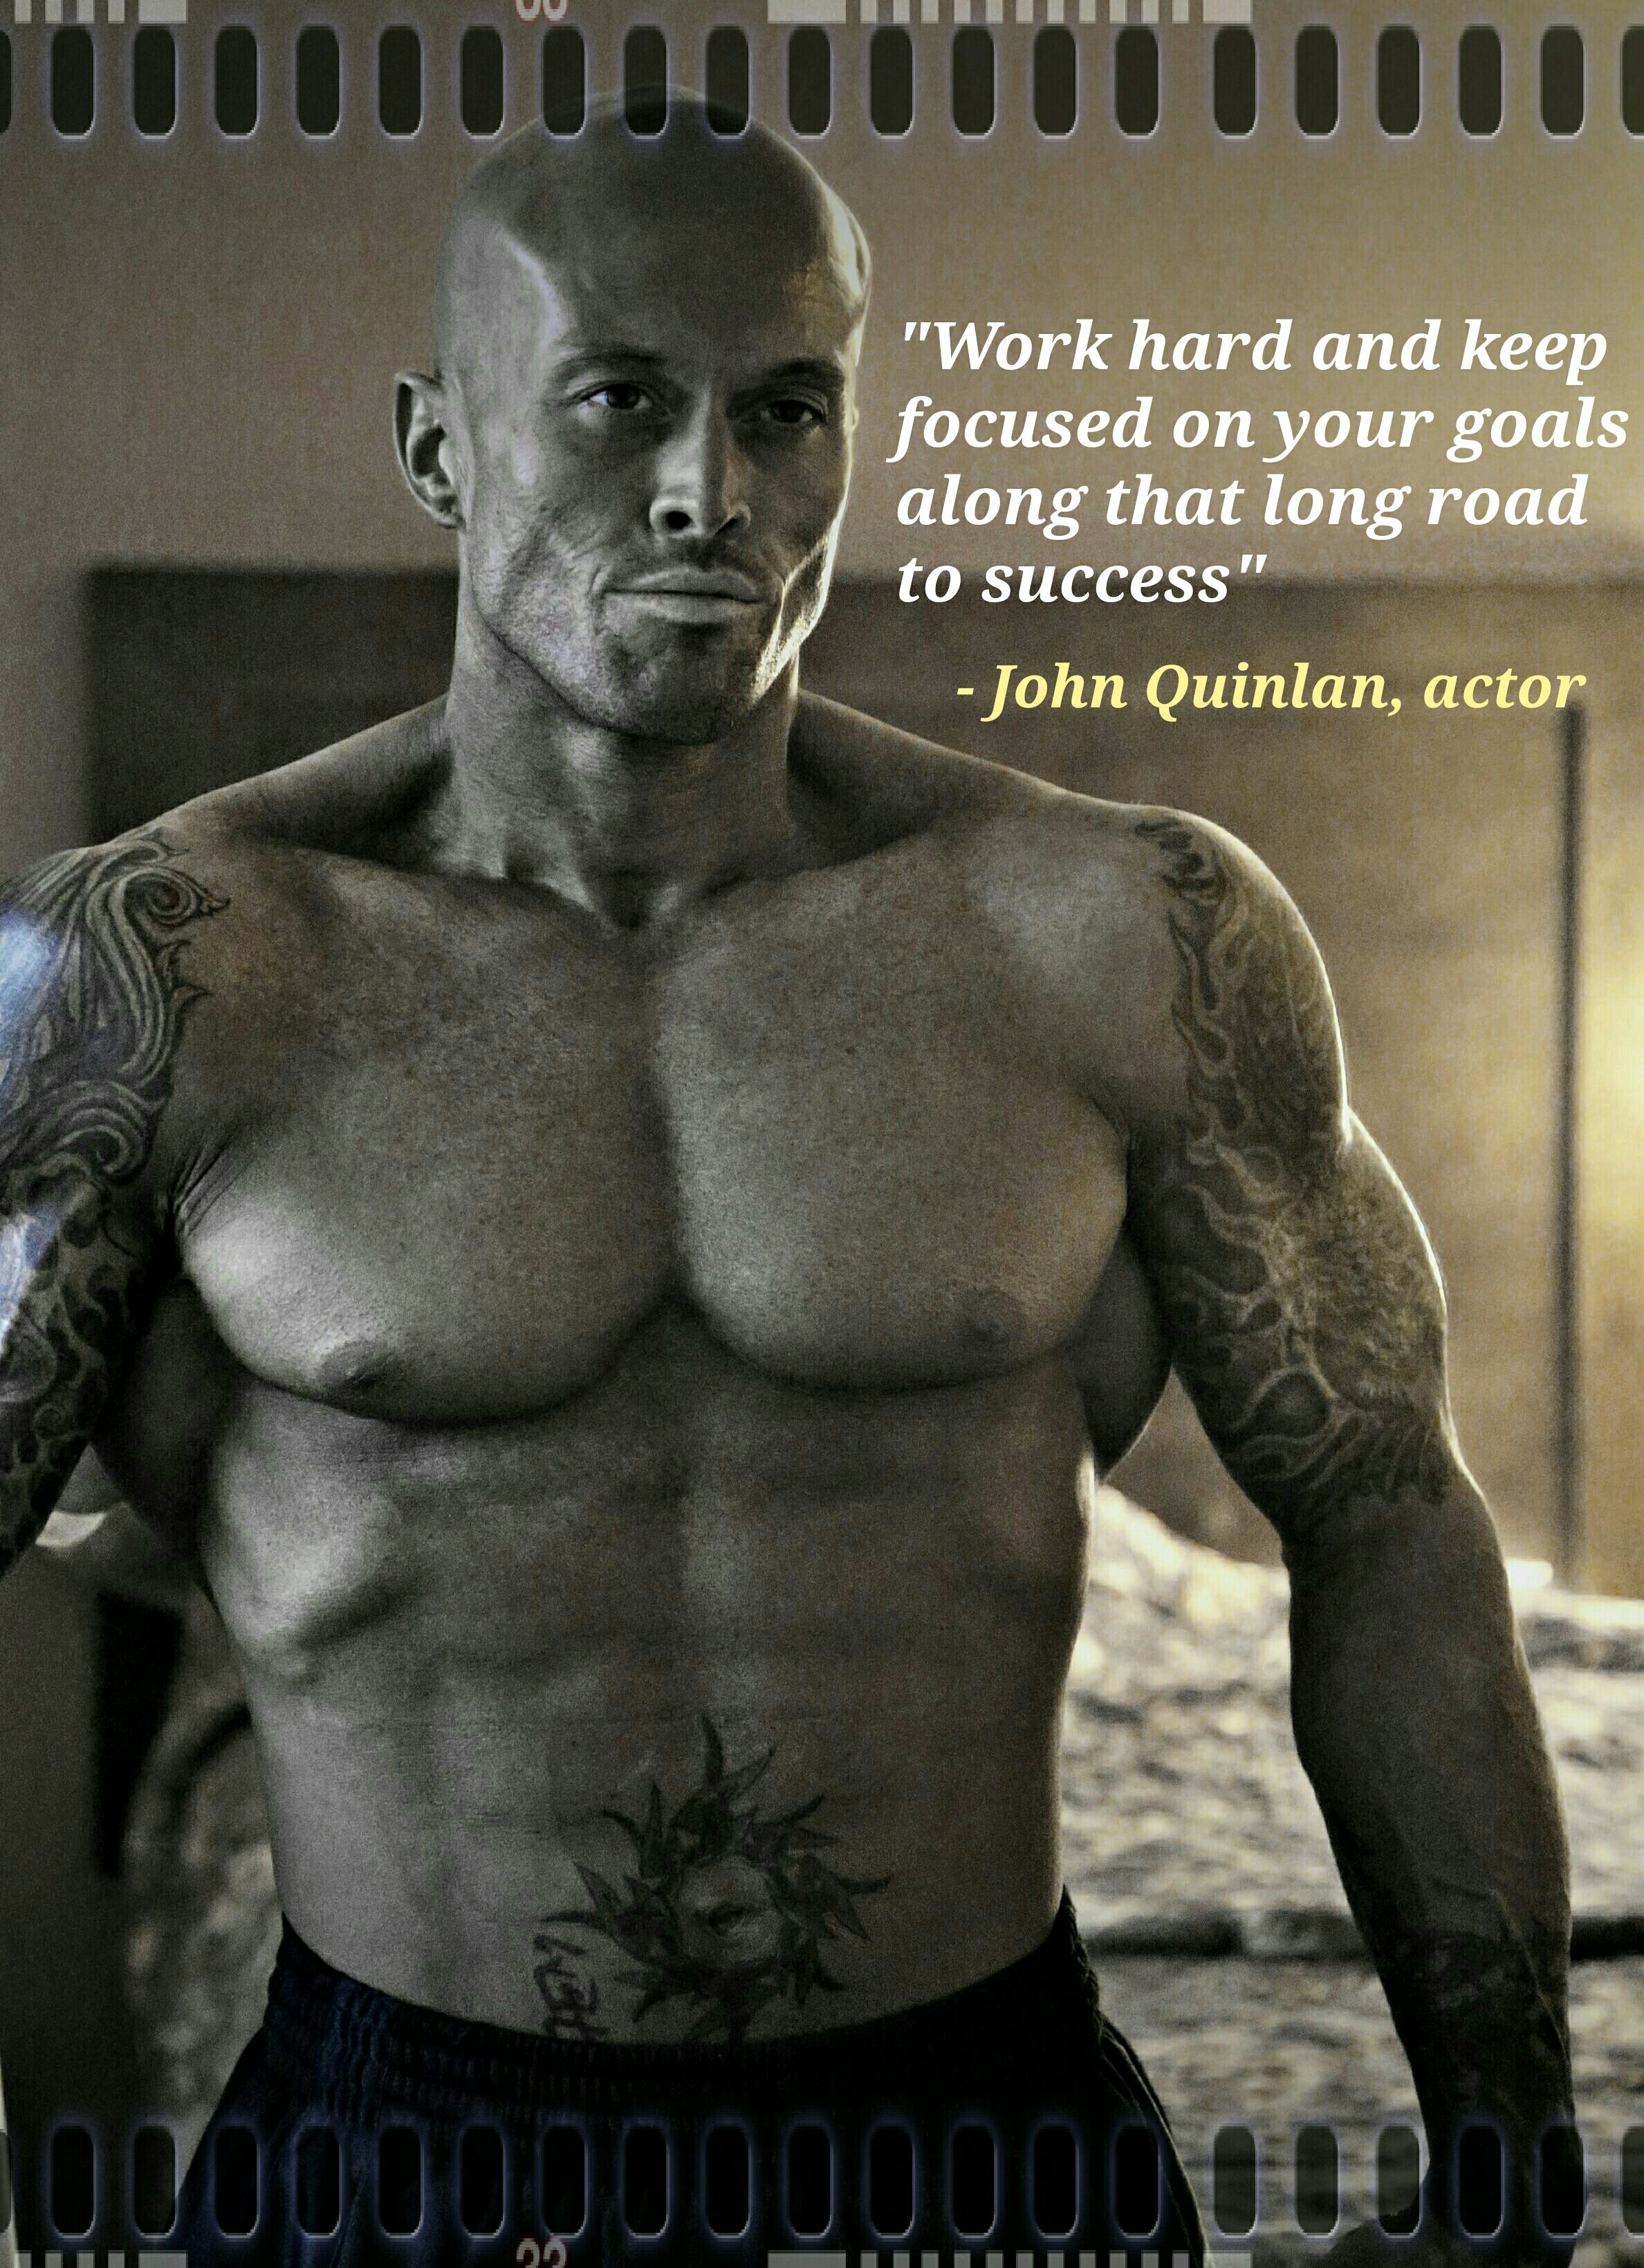 Physique Fitness Cover Model & Actor John Joseph Quinlan Goals Quote #JohnQuinlan